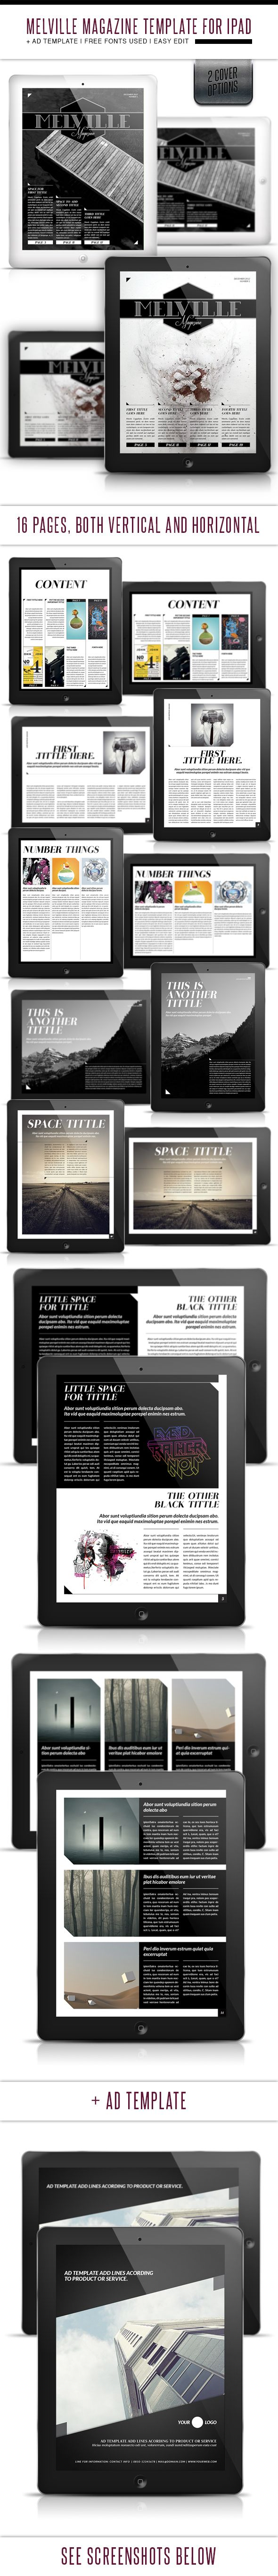 This Ipad tablet magazine template contains a total of 32 pages: 16 portrait view + 16 landscape view. (Plus One cover alternative) Ipad resolution.